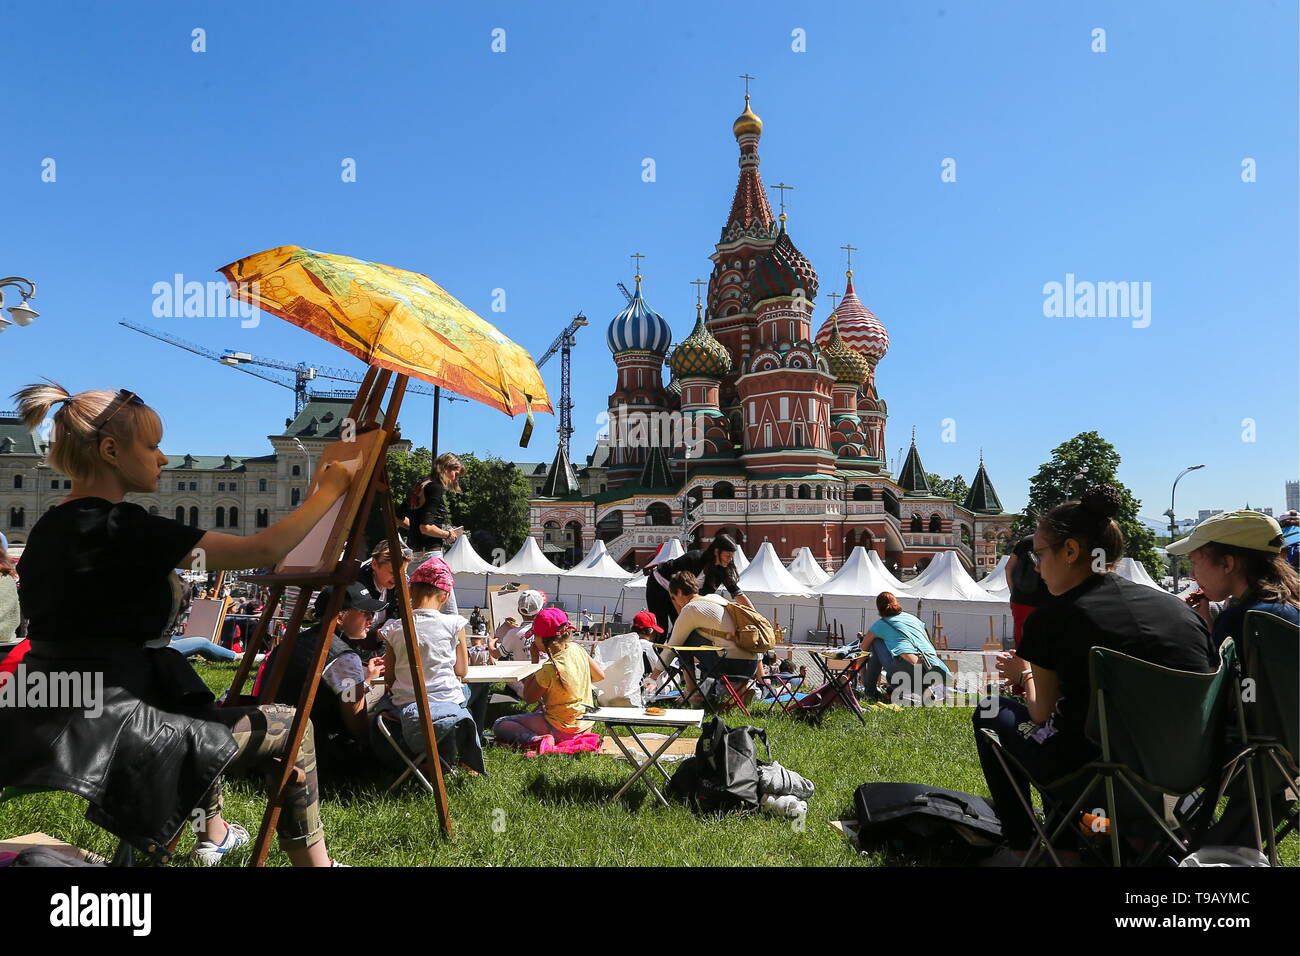 Moscow, Russia. 18th May, 2019. MOSCOW, RUSSIA - MAY 18, 2019: People drawing St Basil's Cathedral during the 9th Draw St Basil's Cathedral art festival in Red Square. Gavriil Grigorov/TASS Credit: ITAR-TASS News Agency/Alamy Live News - Stock Image